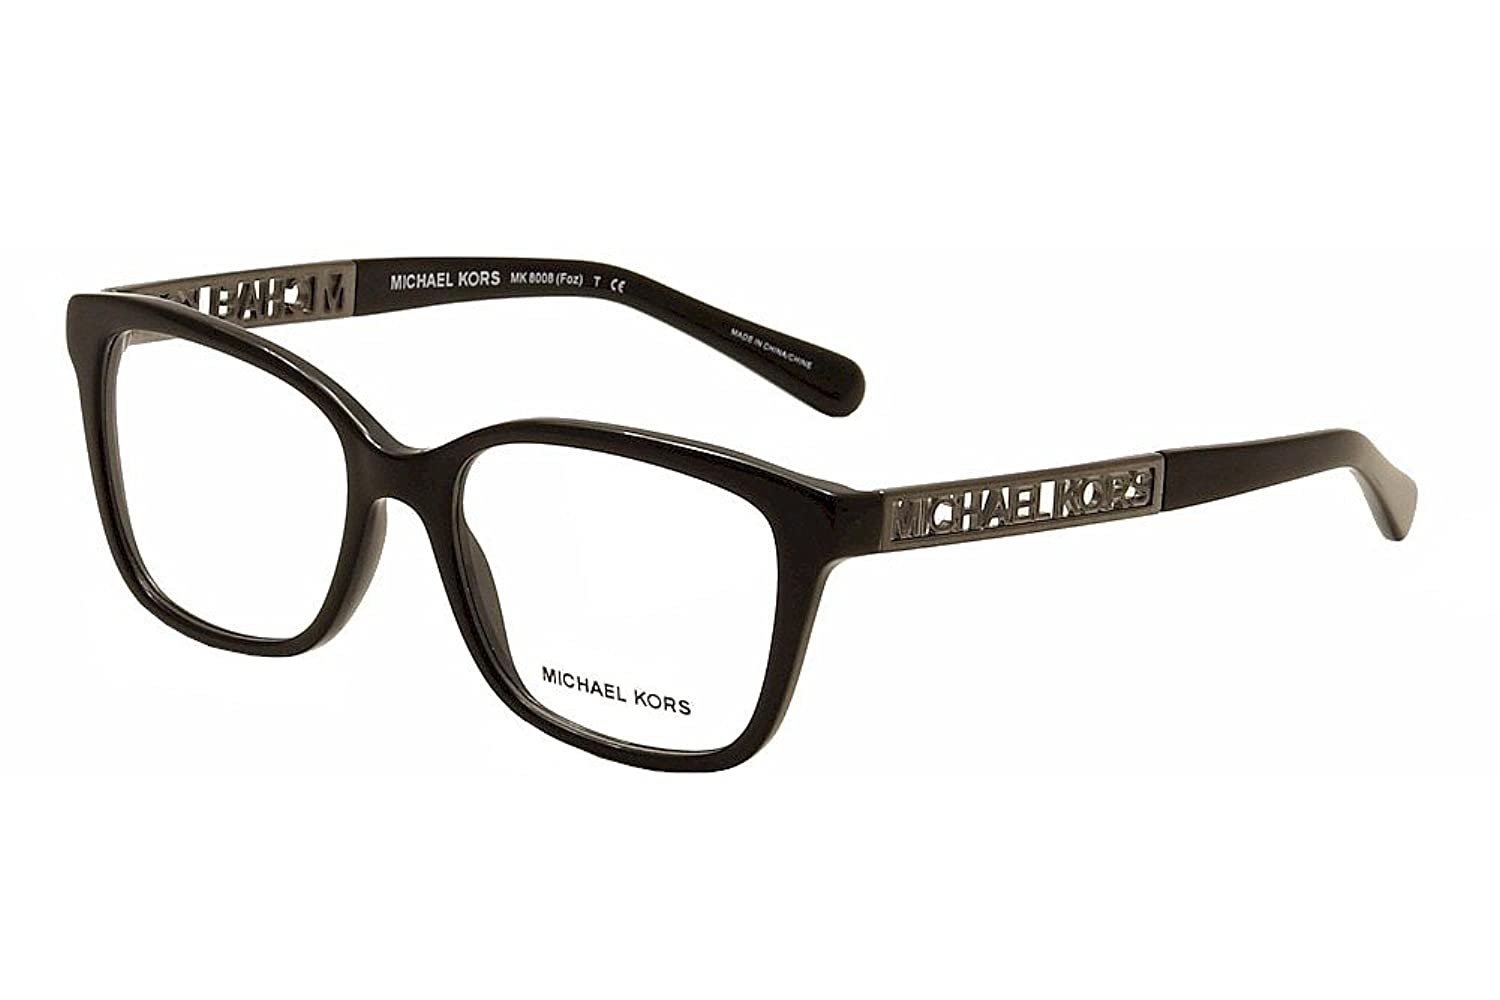 michael kors foz mk8008 eyeglass frames 3005 52 black at amazon womens clothing store - Michael Kors Frames